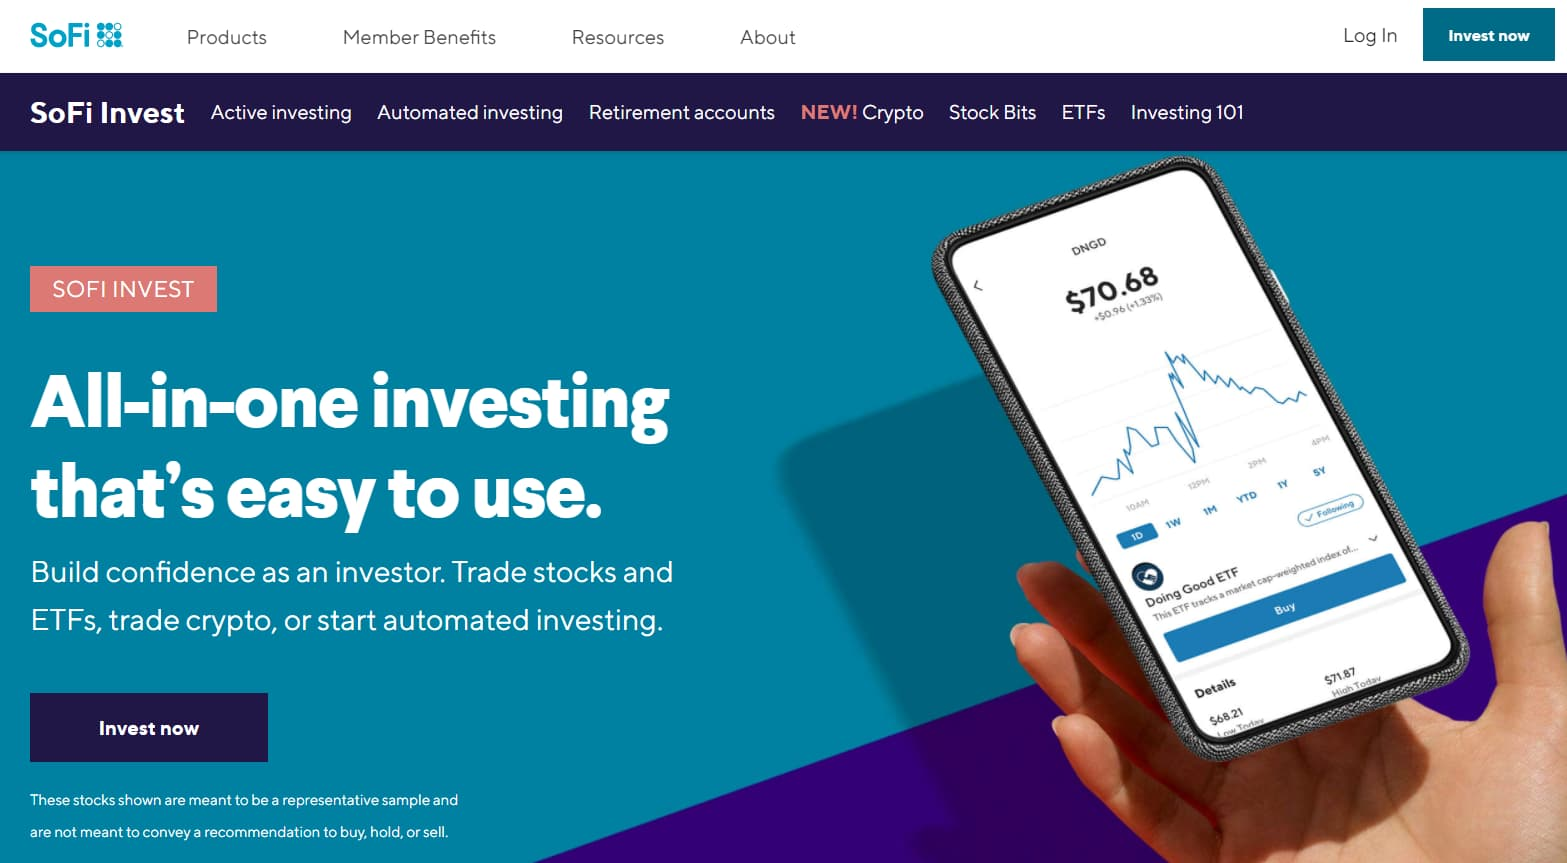 SoFi Invest App: Stock, ETF, Automated Investing